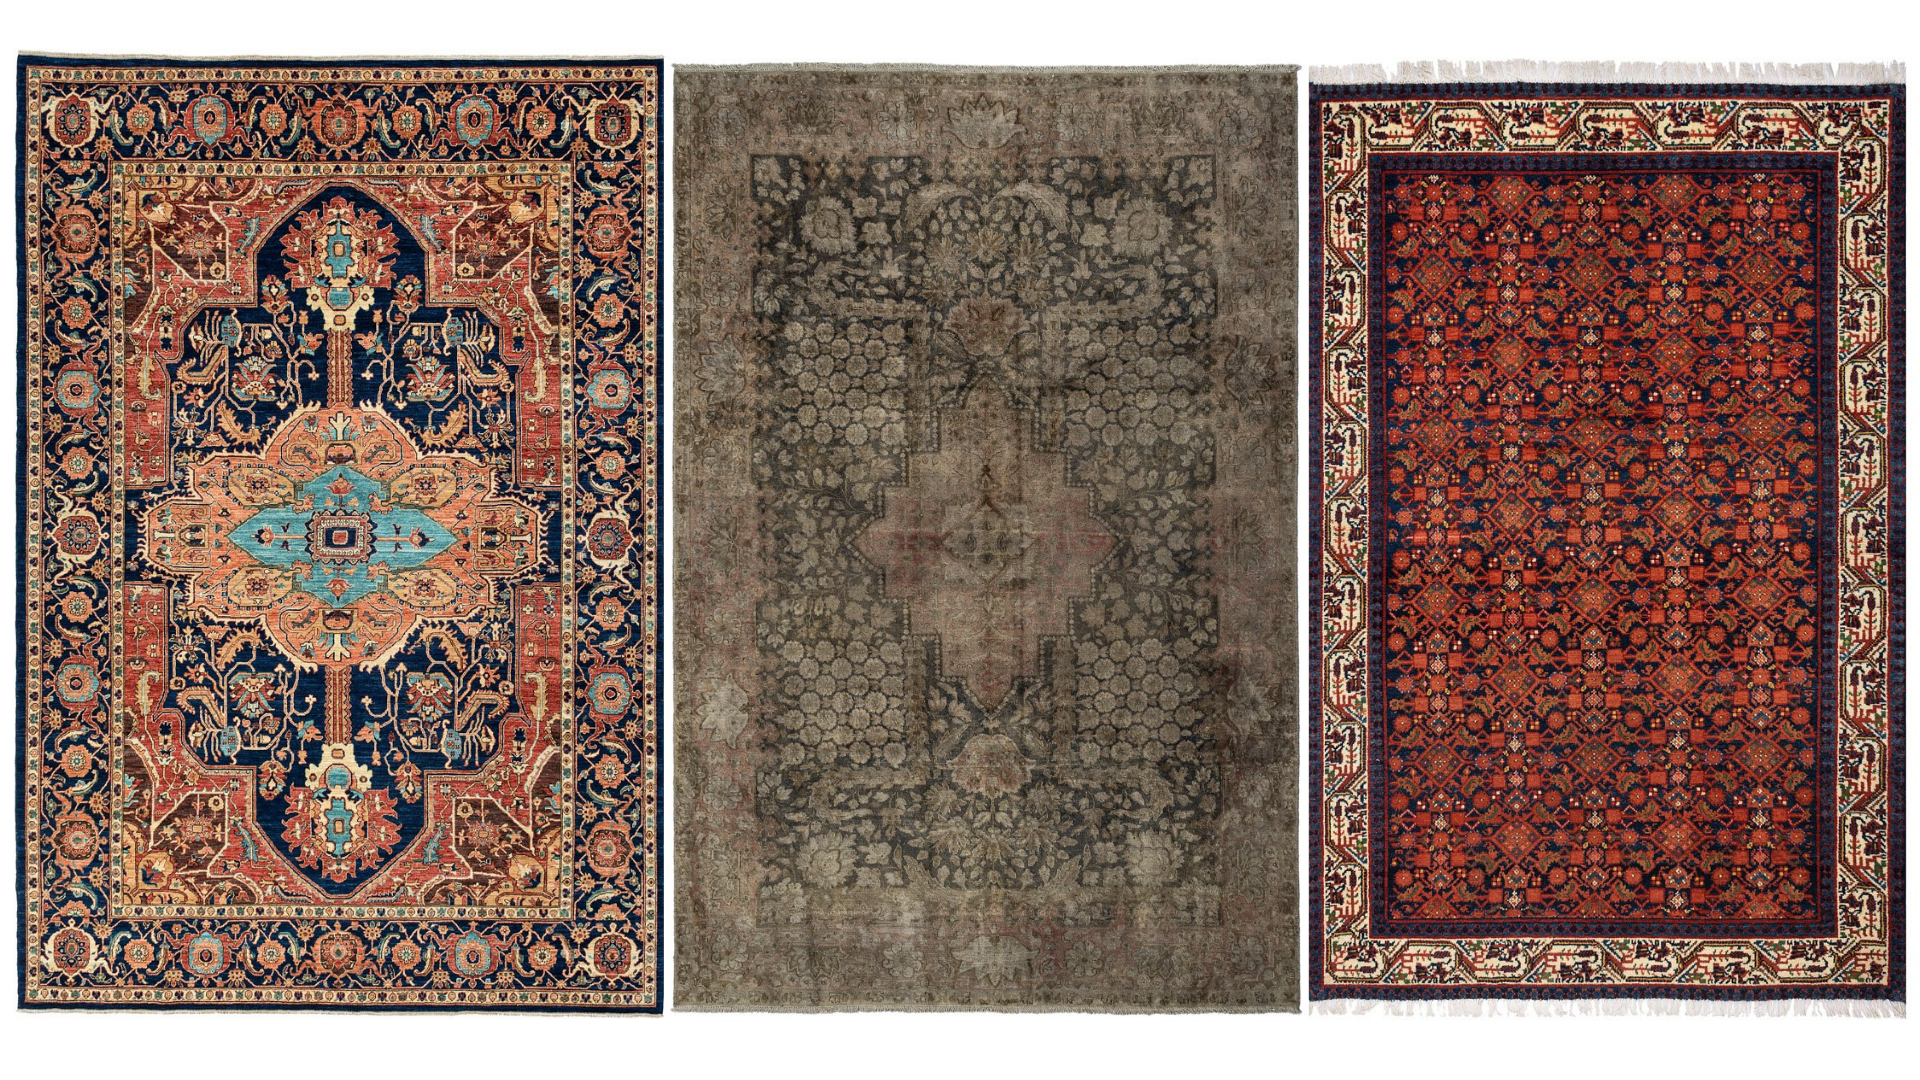 persian rugs, oriental rugs, london rugs, rug collections, home accessories, home decor, ethical decor, sustainable decor, decor trends 2021